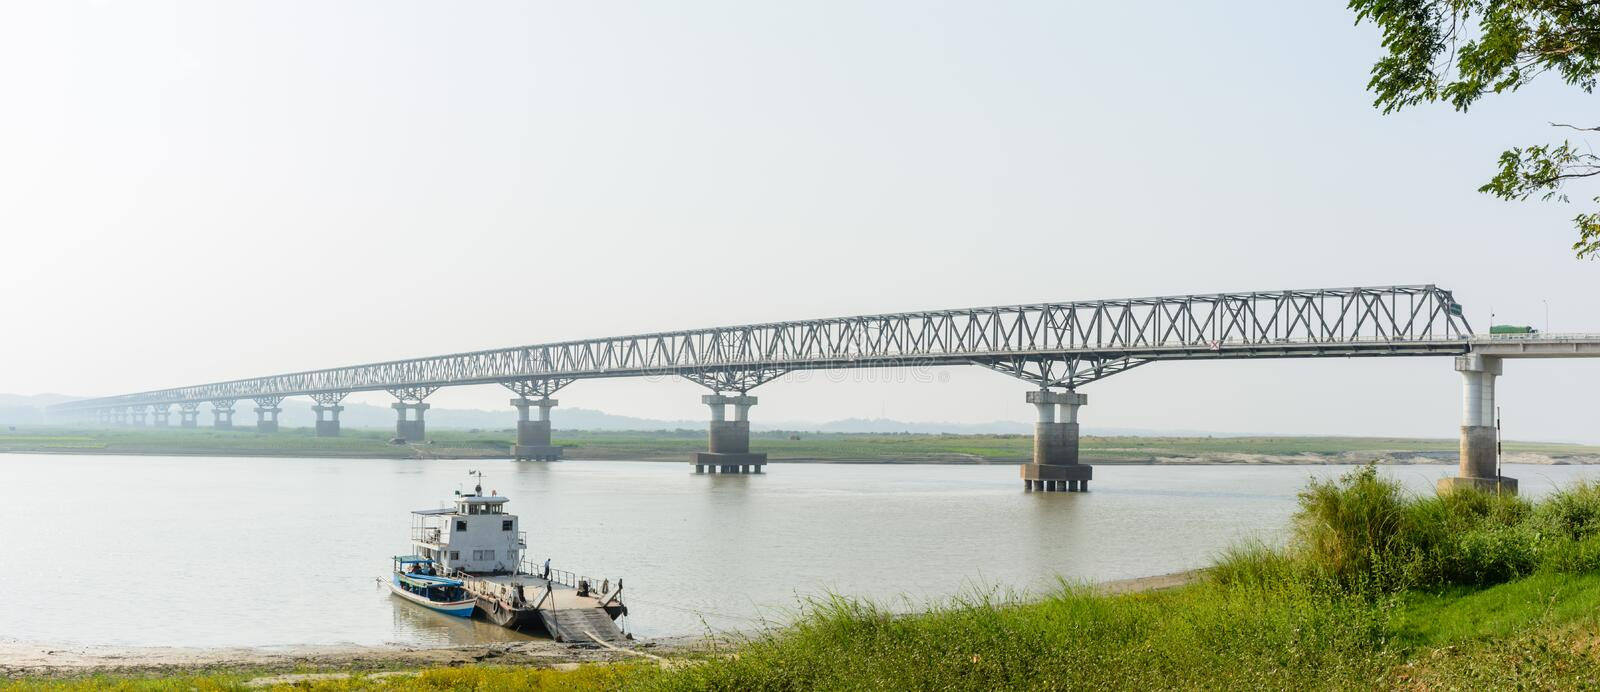 Modern bridge at Magway, Myanmar. It is joining between Minbu and Magway township, over the Irrawaddy river. Bridge name is `Irrawaddy Bridge Magway royalty free stock photos